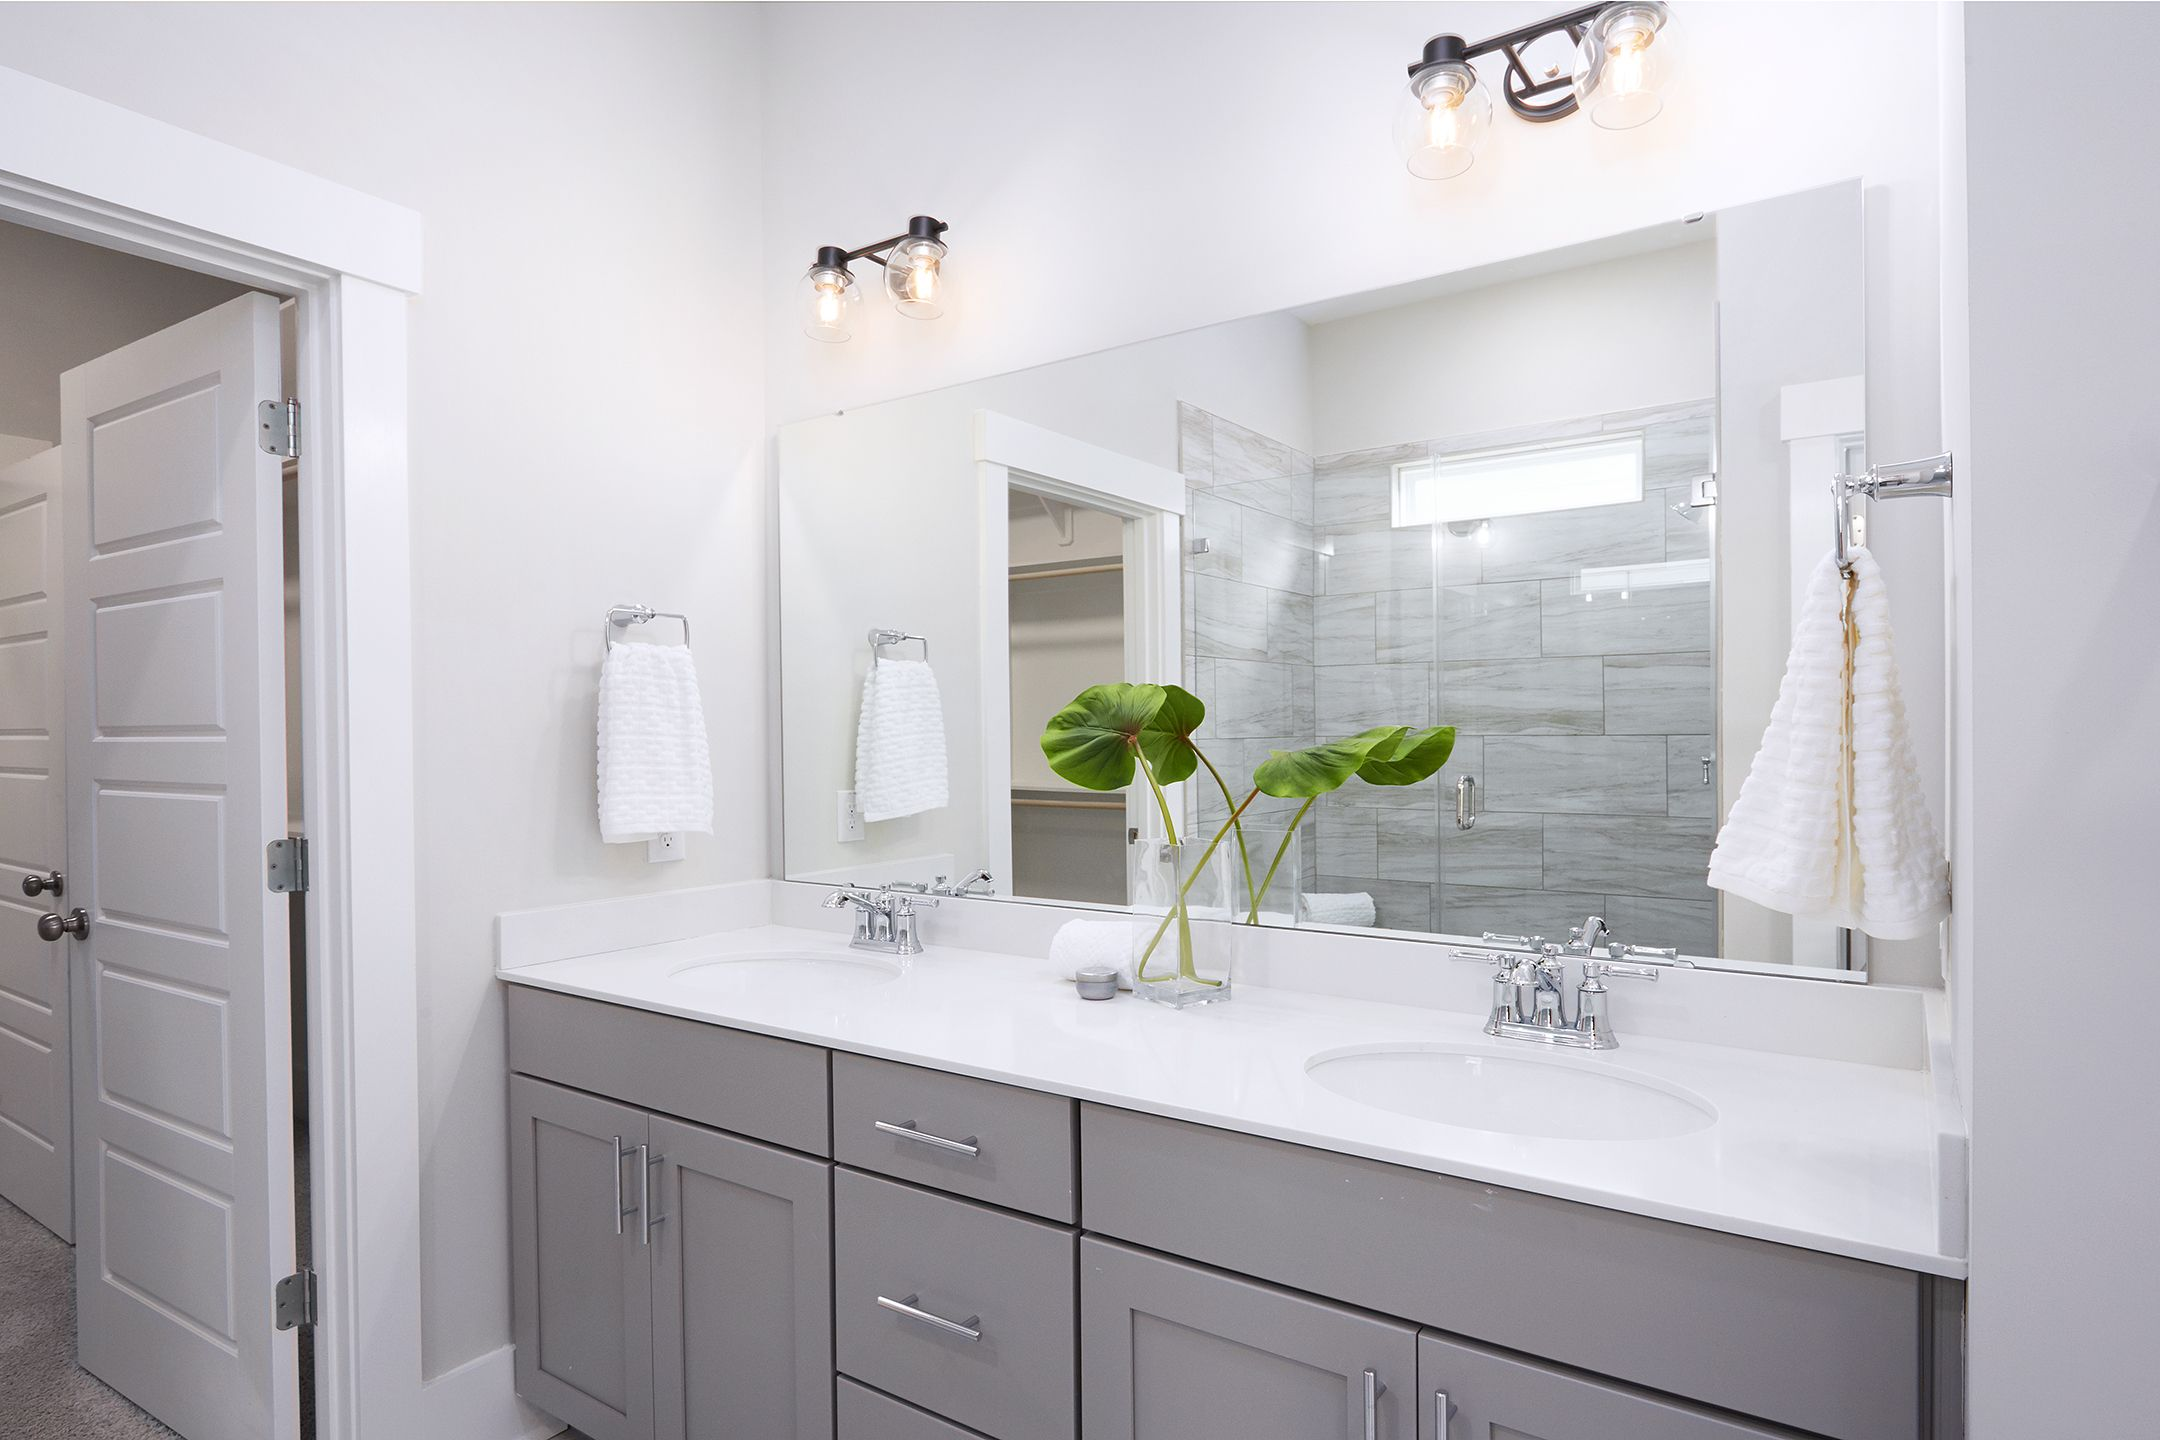 Bathroom featured in the Rutledge By Homes by Dickerson in Charleston, SC